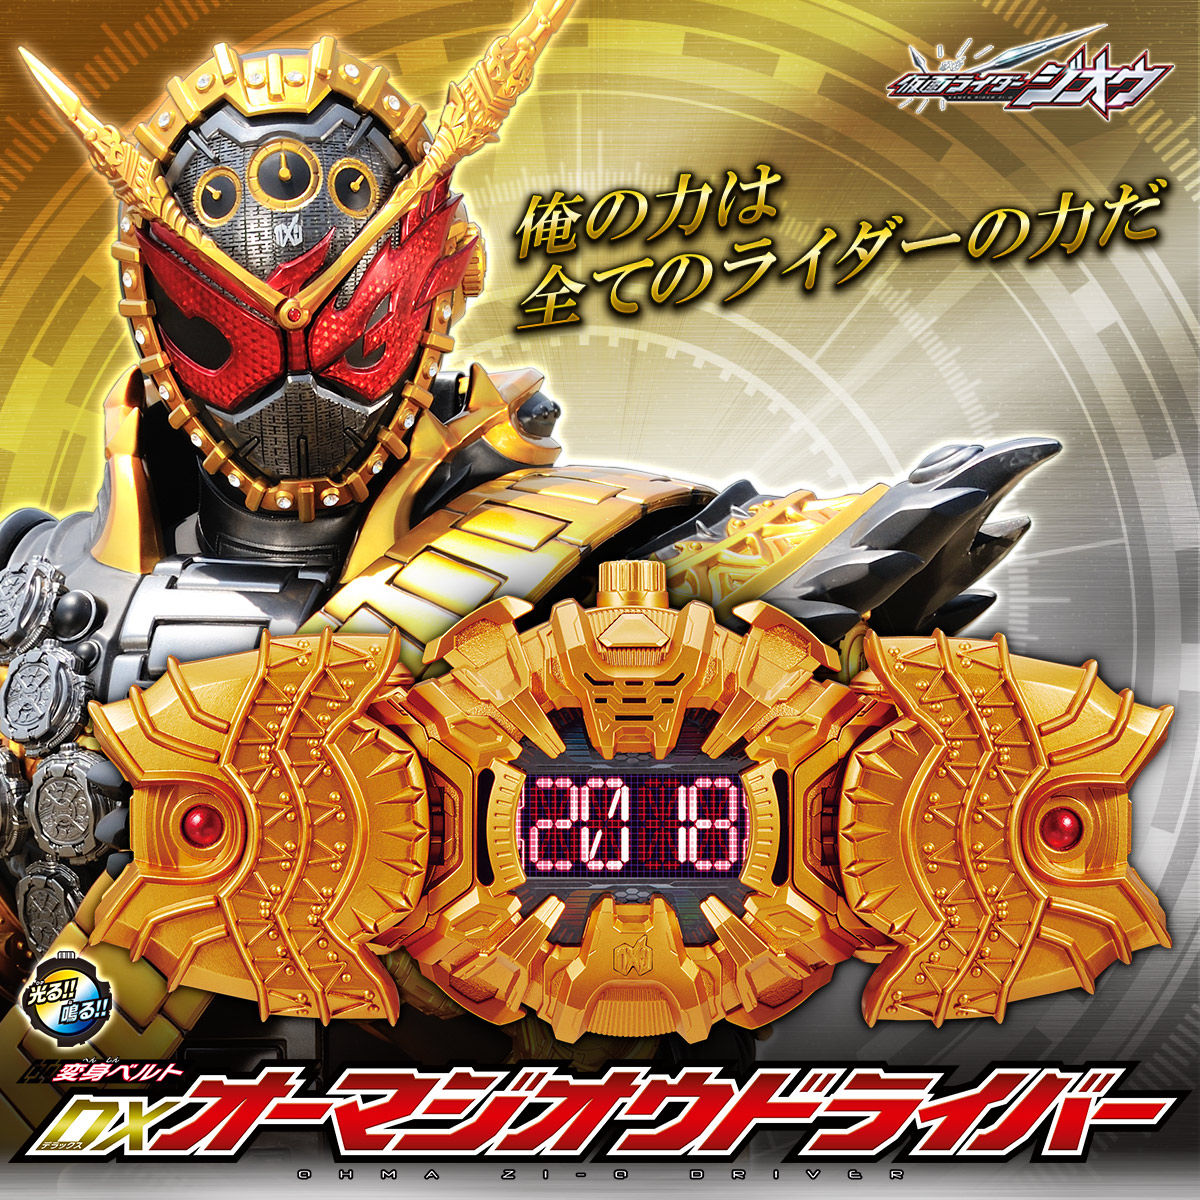 Official Images: Kamen Rider Zi-O DX Oma Zi-O Driver | Hero Club